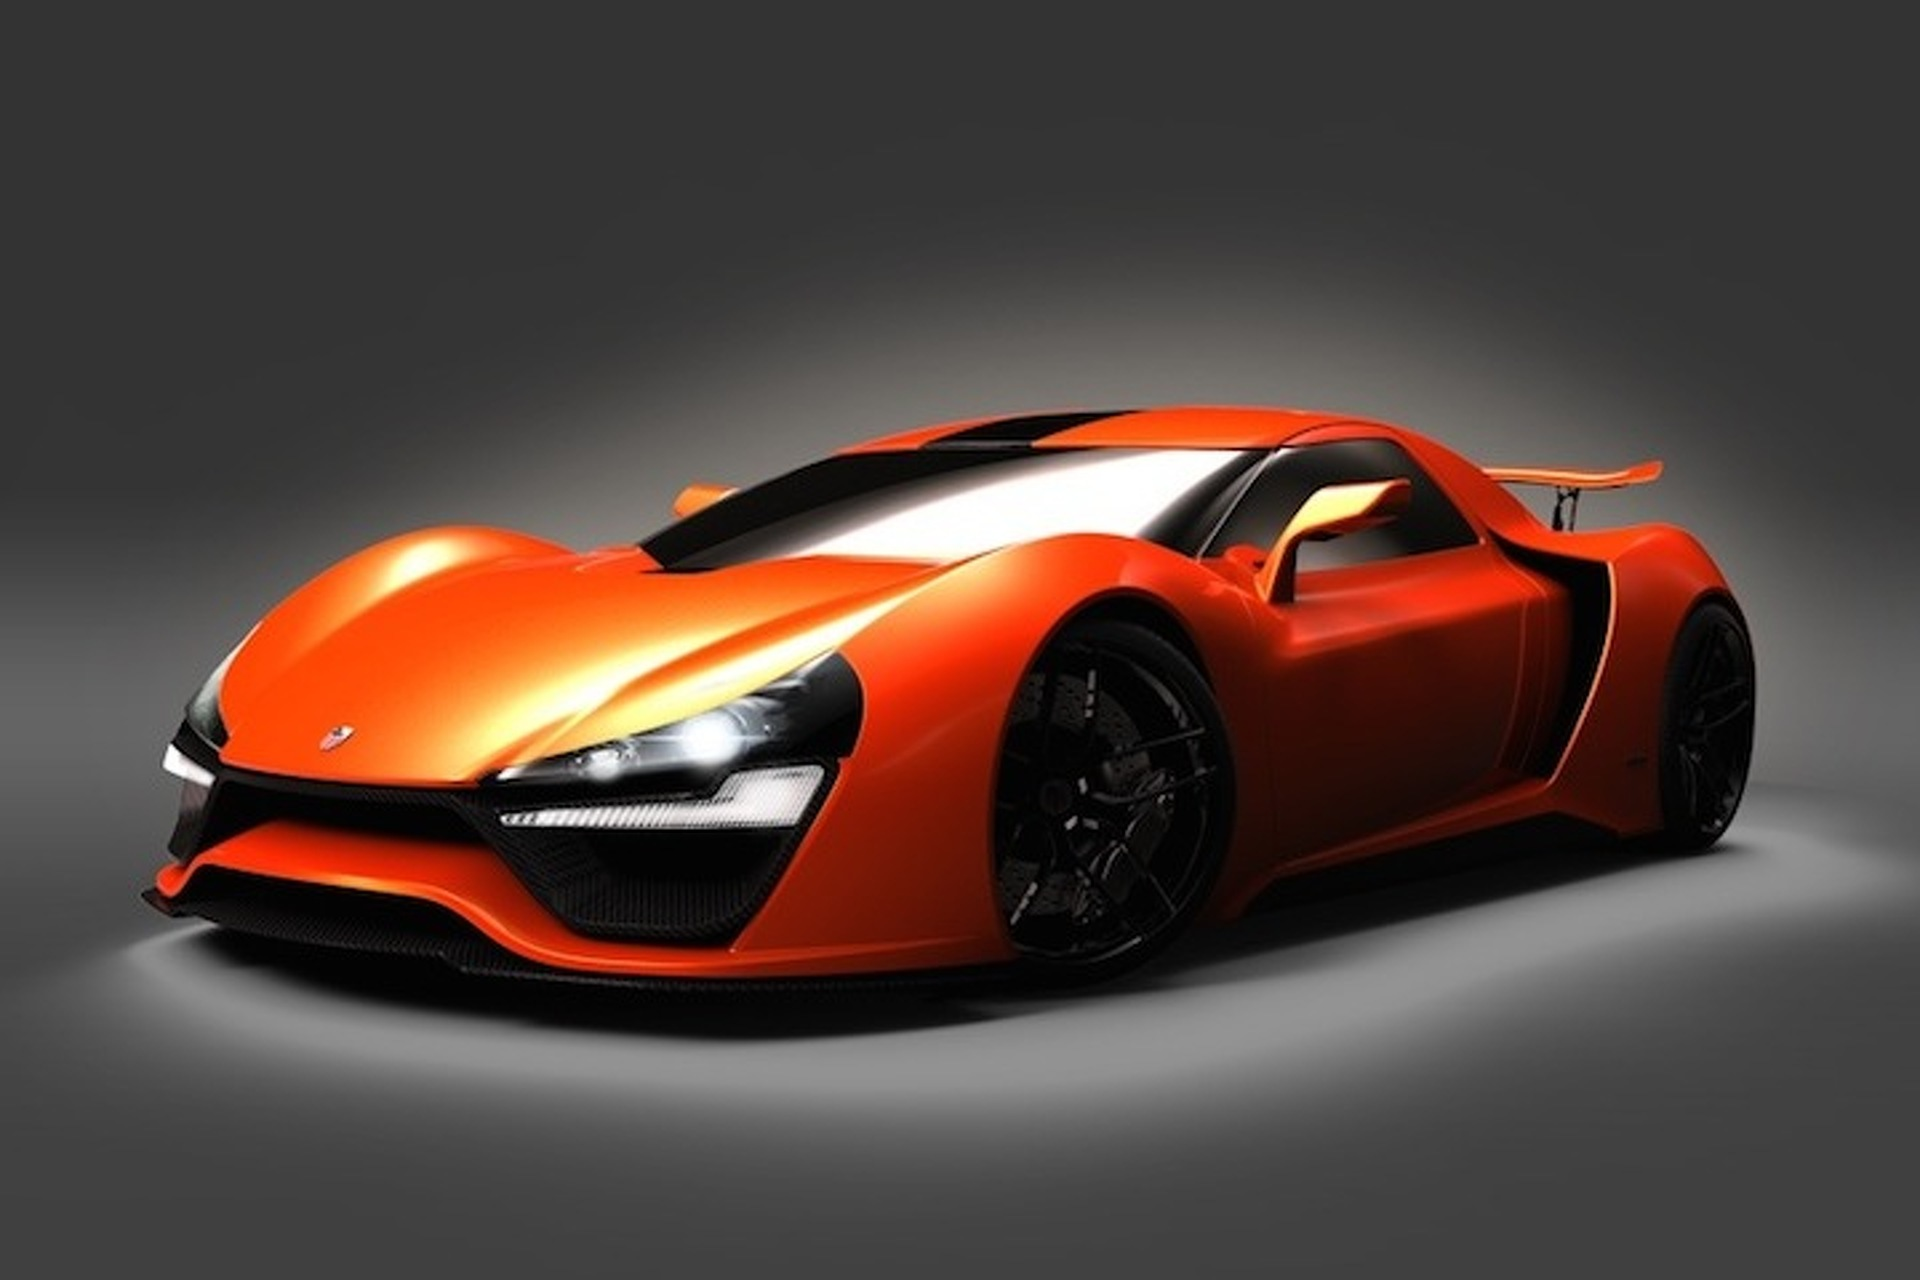 Trion Nemesis: A 2,000HP American Hypercar We Hope Will be Built